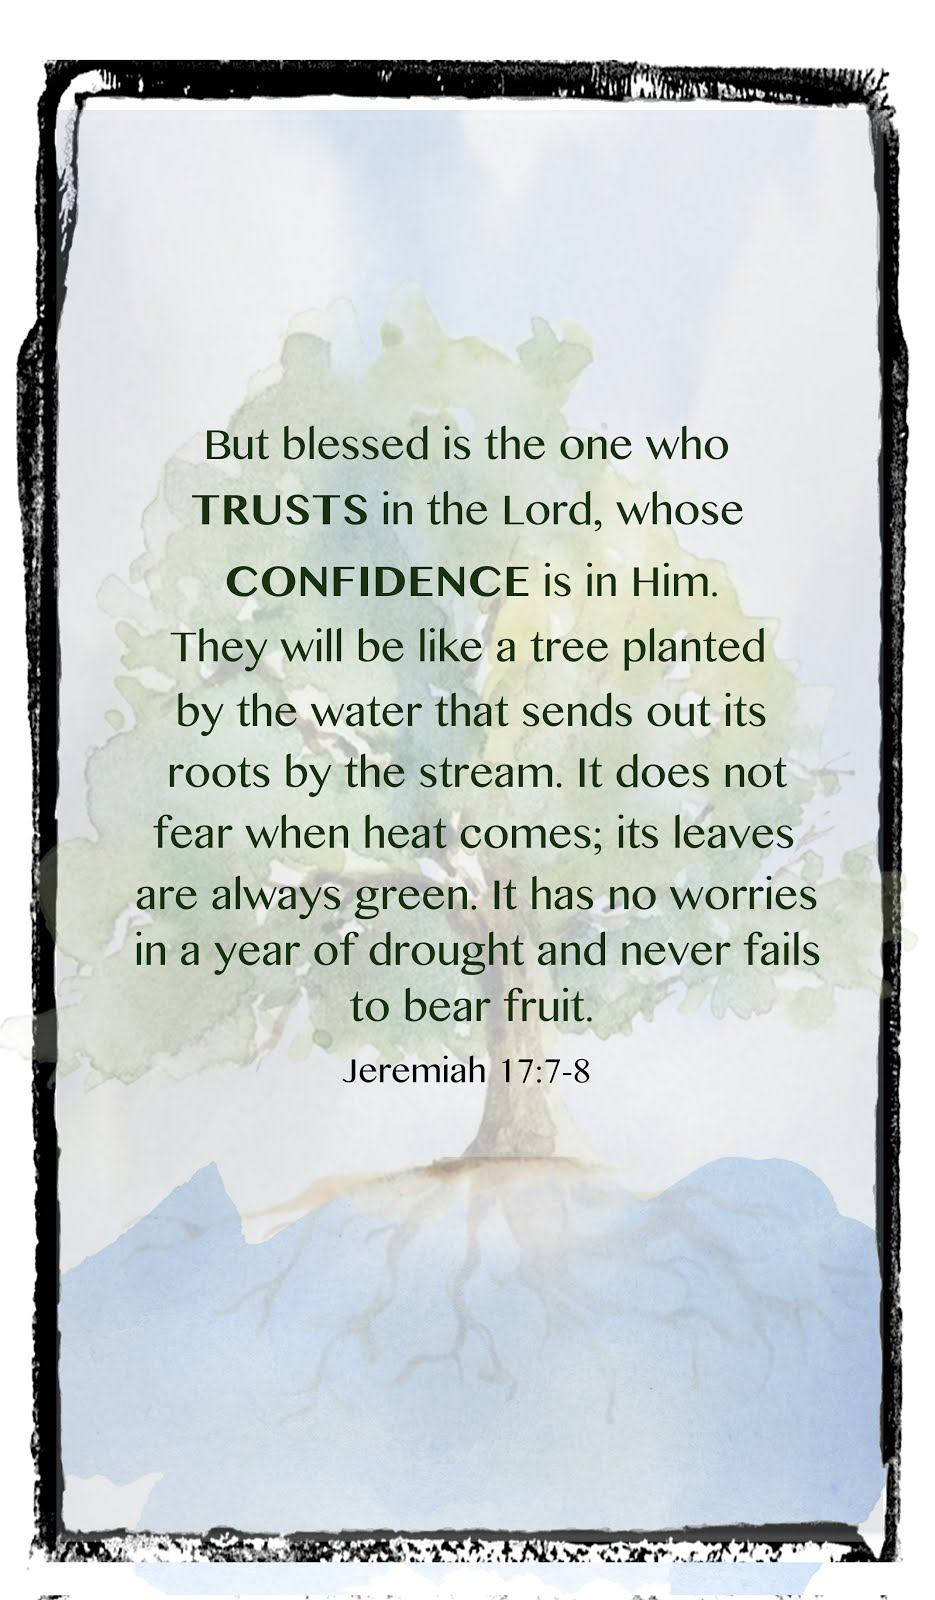 Trust & Confidence: A study of Jeremiah 17:7-8 Something Delightful Blog